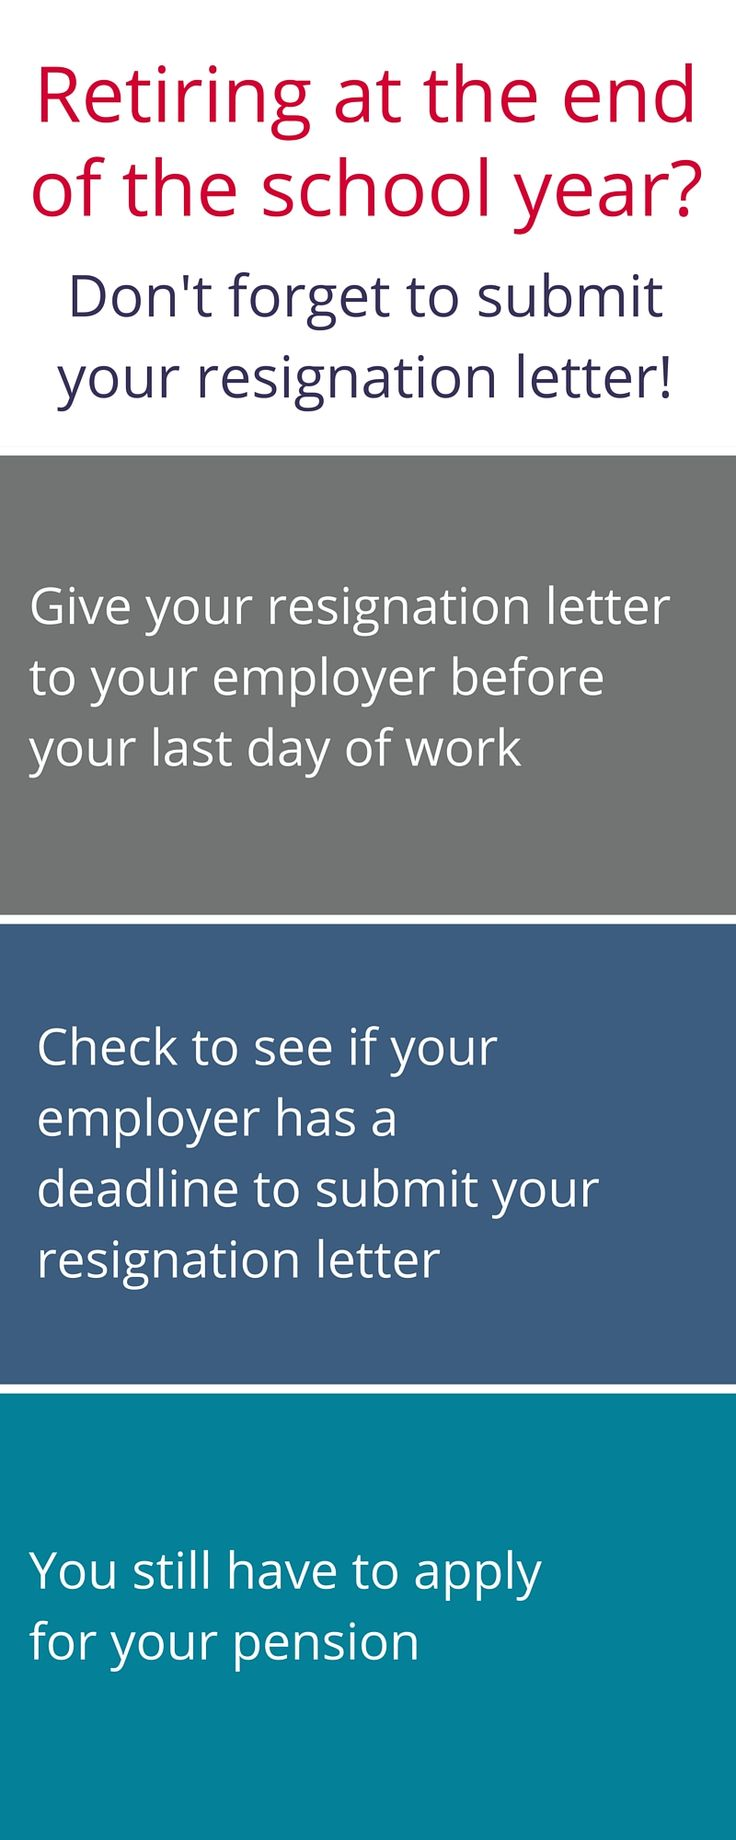 Retiring at the end of the school year? Don't forget to submit your resignation letter!